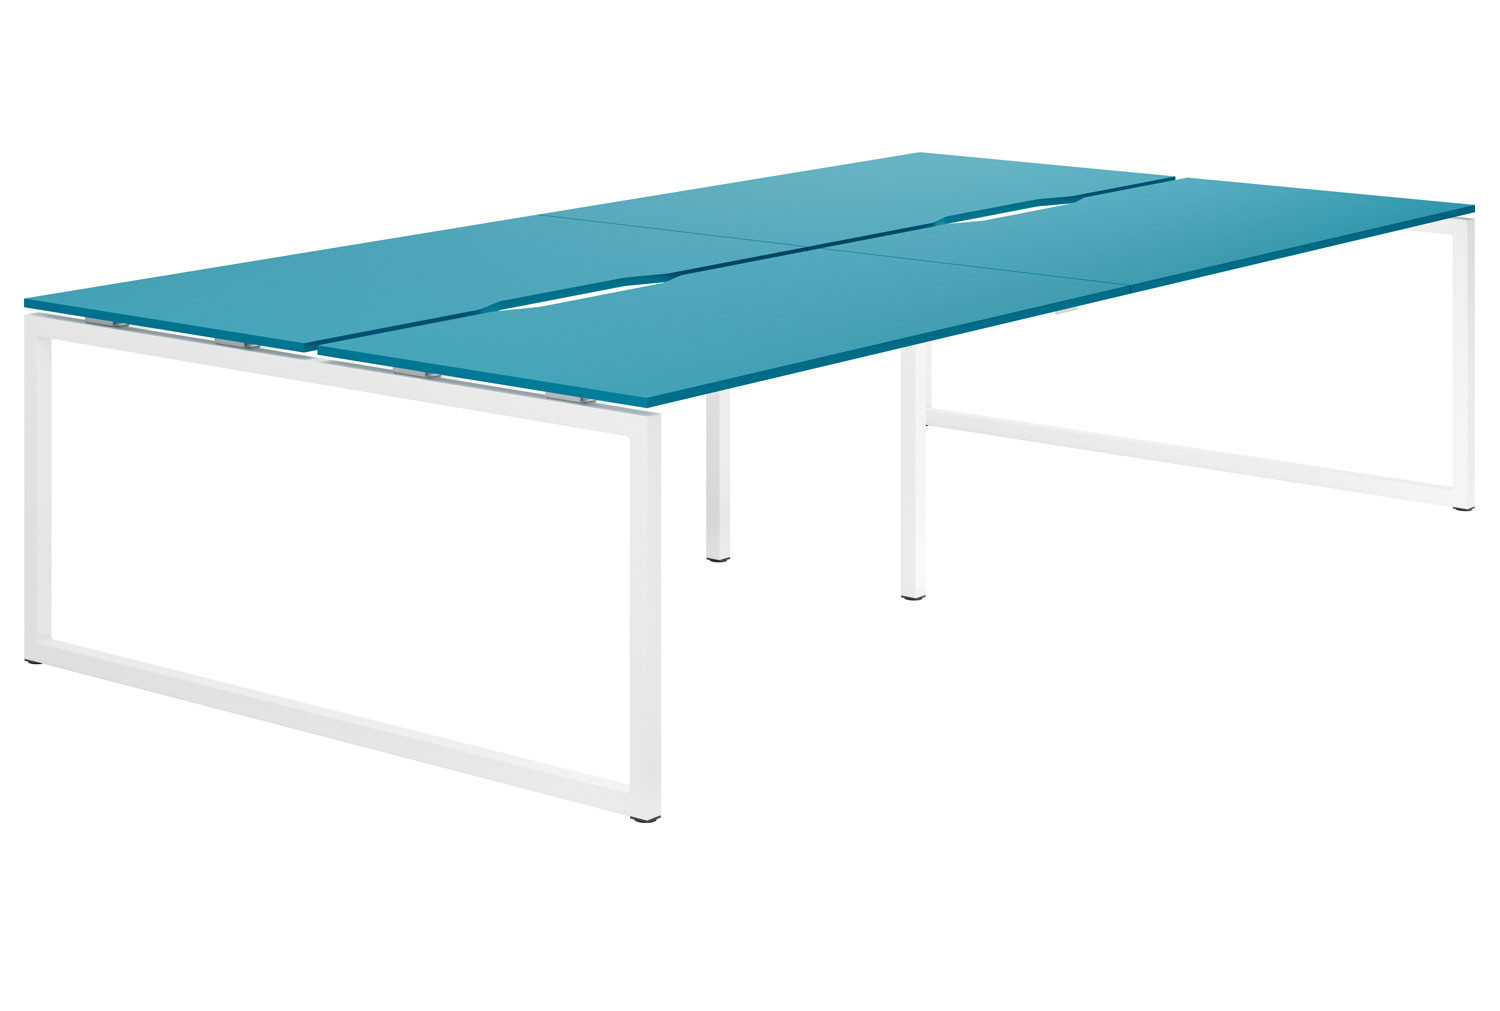 Campos Hooped Leg 4 Person Back To Back Bench Desk (Light Blue)